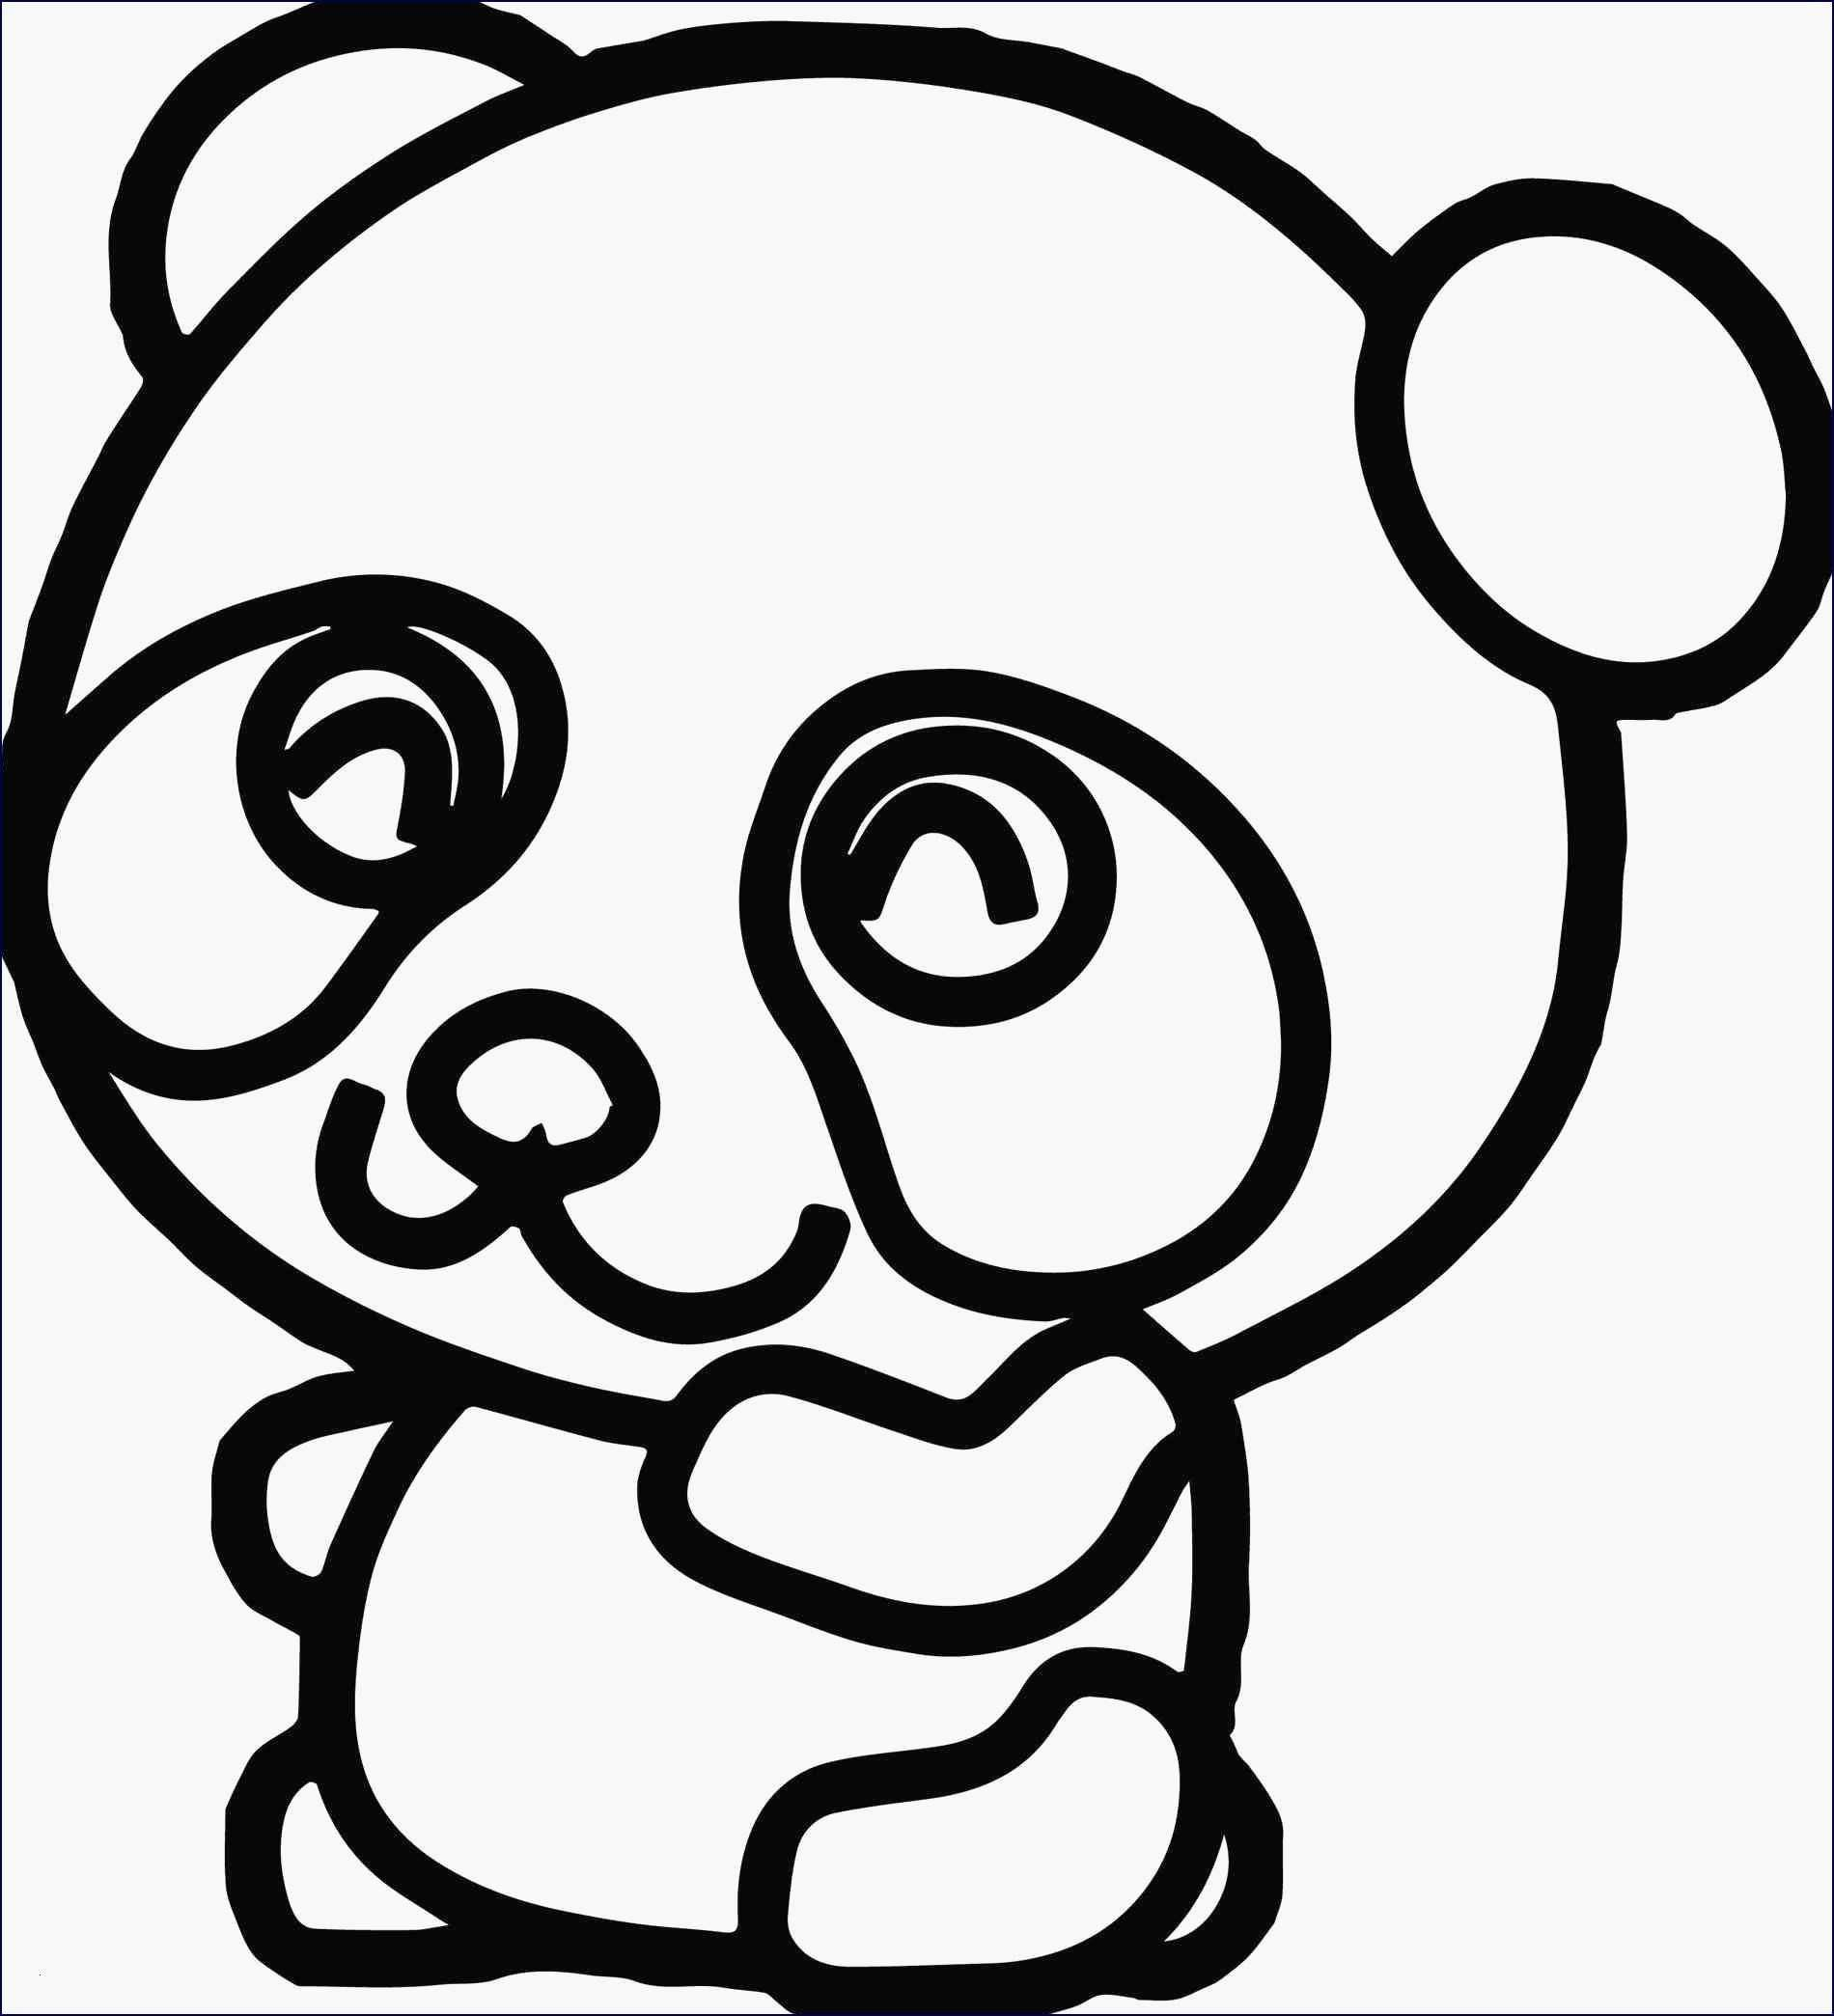 My Singing Monsters Coloring Pages Elegant Kung Fu Panda Ausmalbilder Einzigartig 50 Frisch Ku In 2020 Monster Coloring Pages Emoji Coloring Pages Panda Coloring Pages